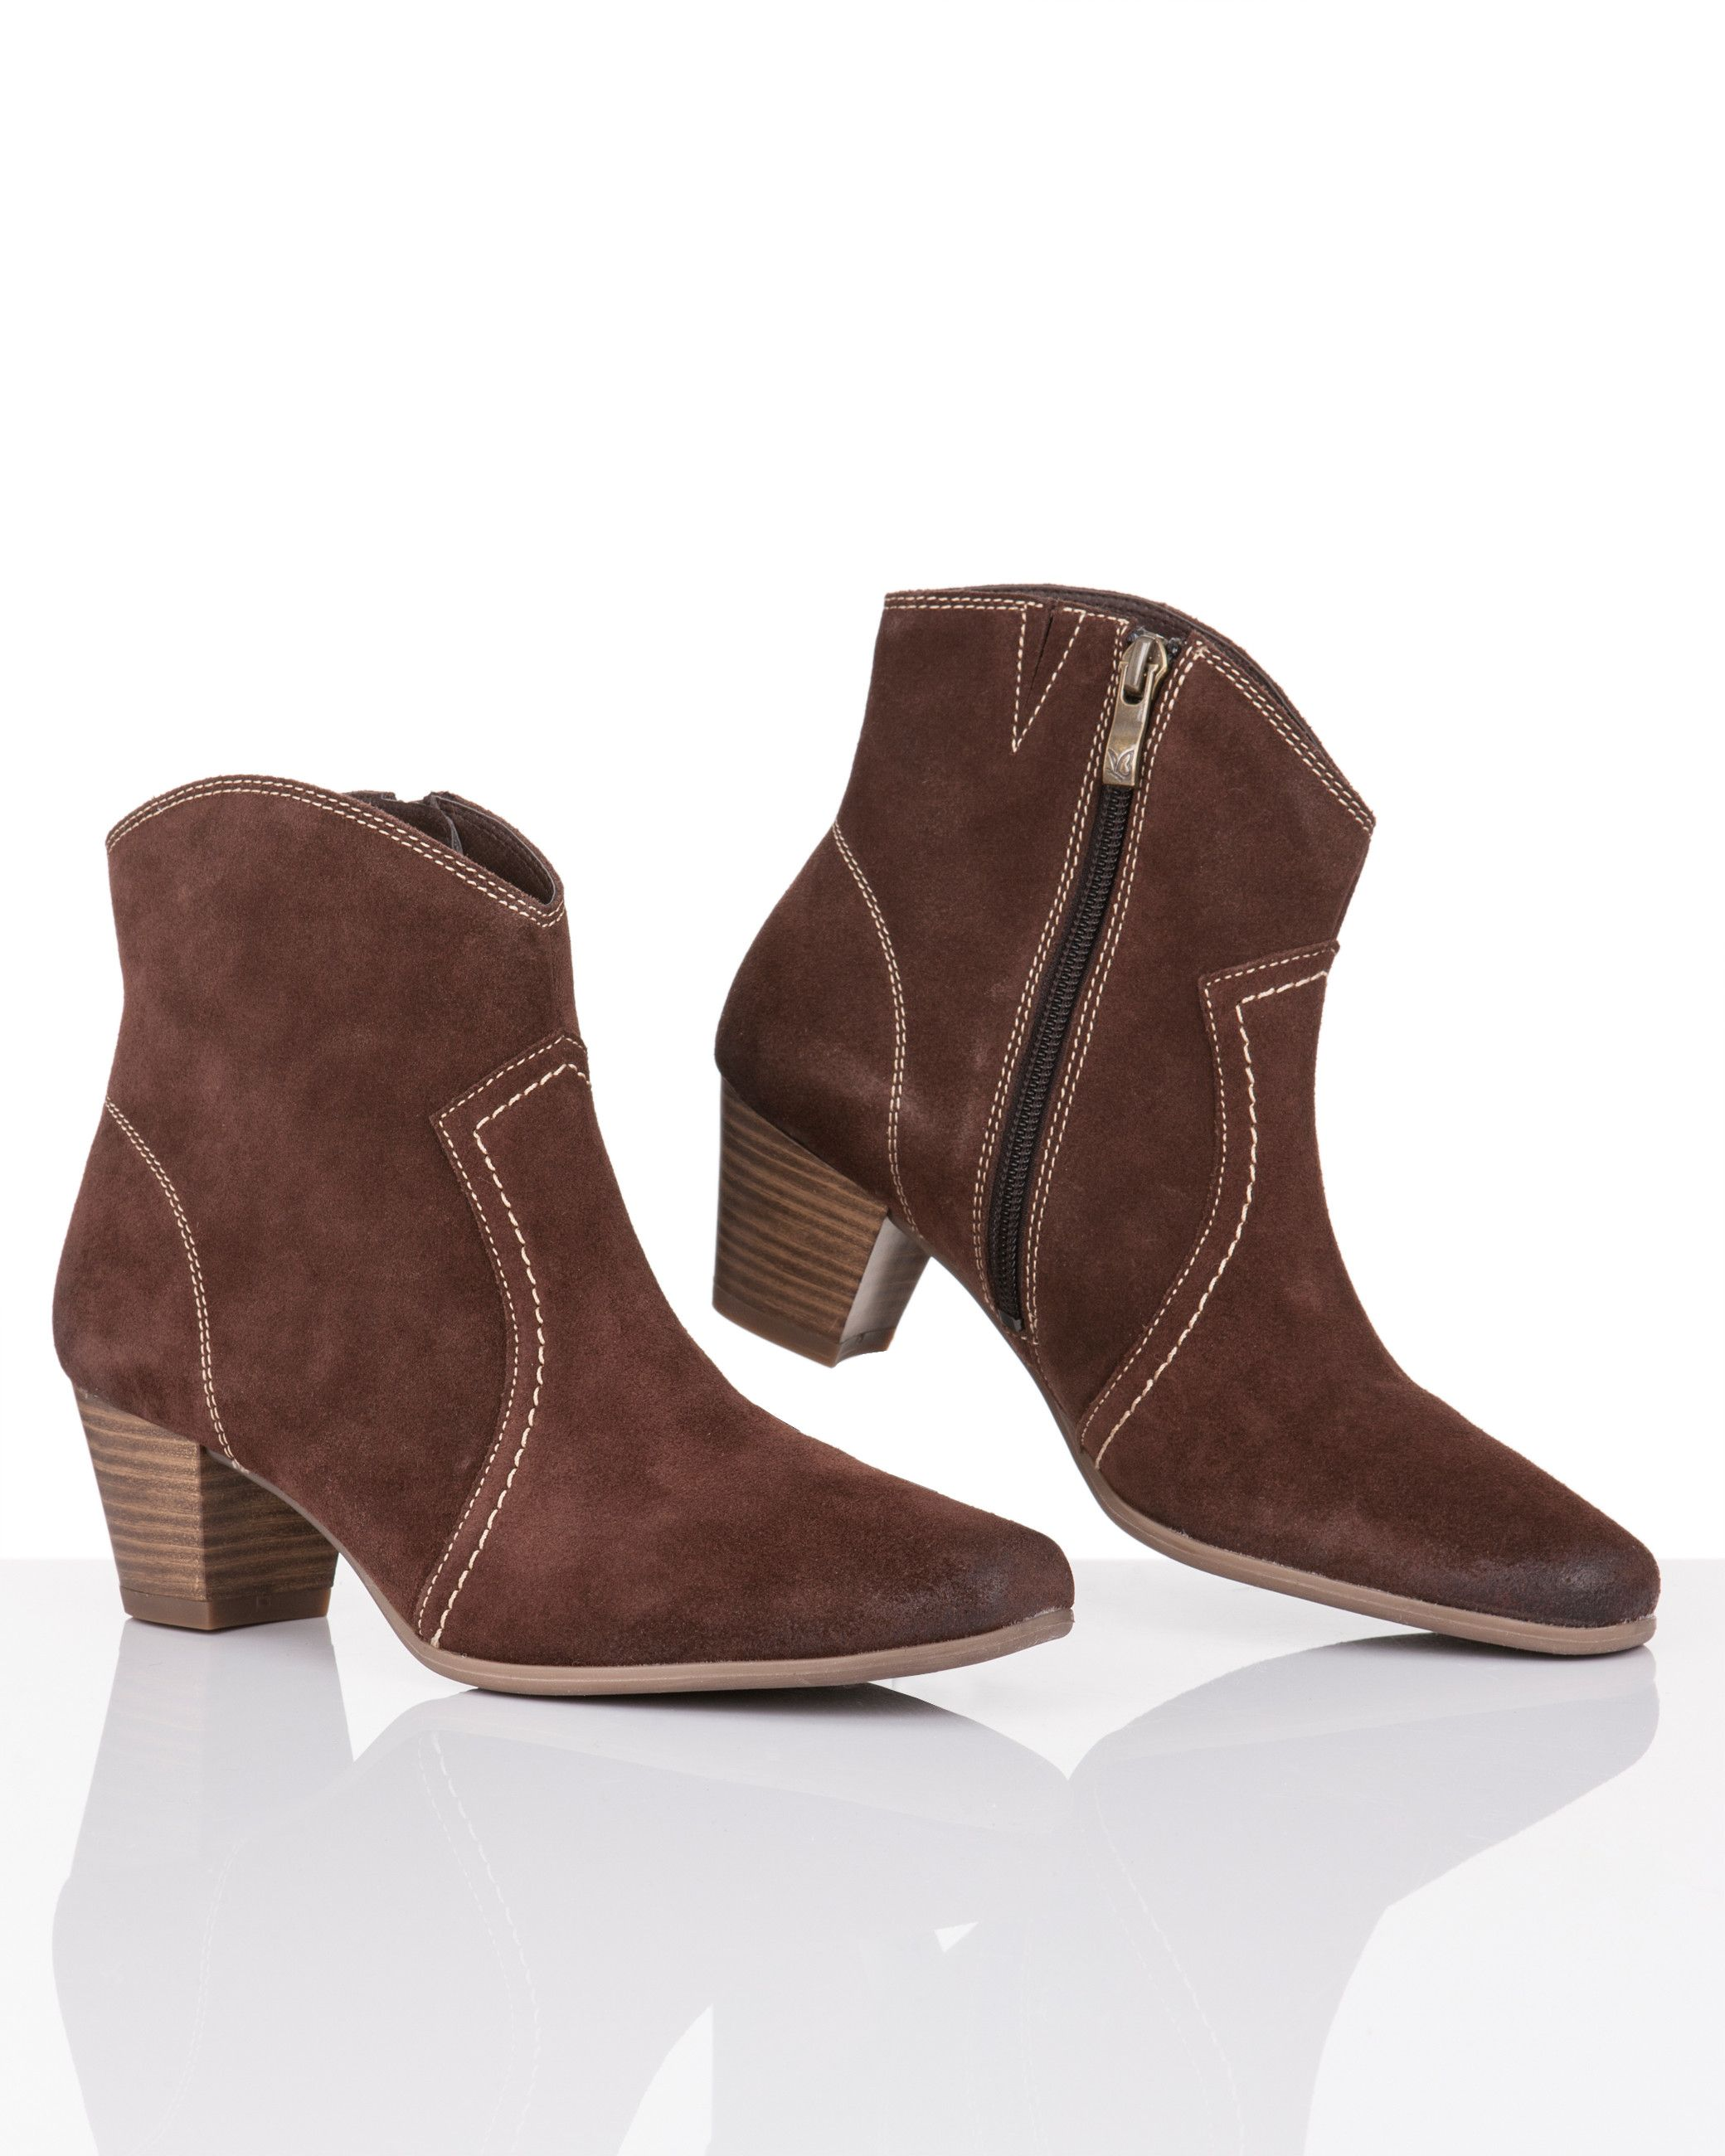 official site new photos lowest price Caprice | Womens Fashion | Stiefeletten Westernstyle ...